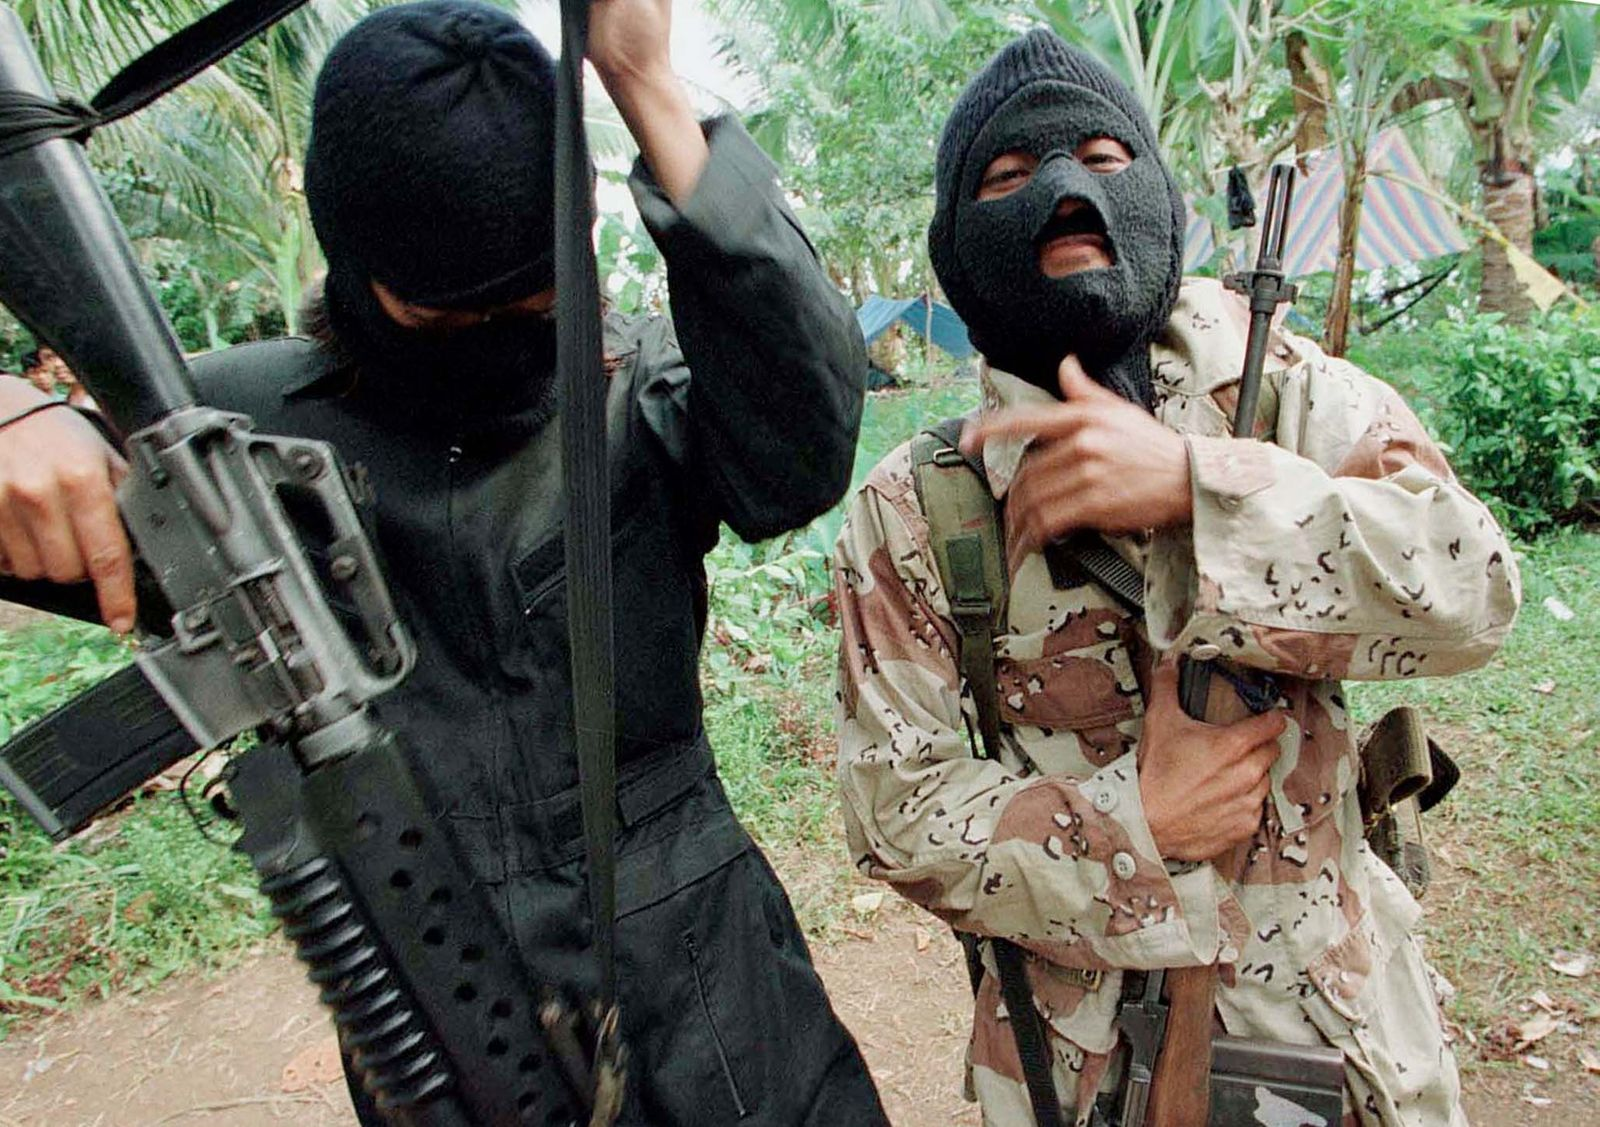 ABU SAYYAF REBELS AT THEIR CAMP IN JOLO